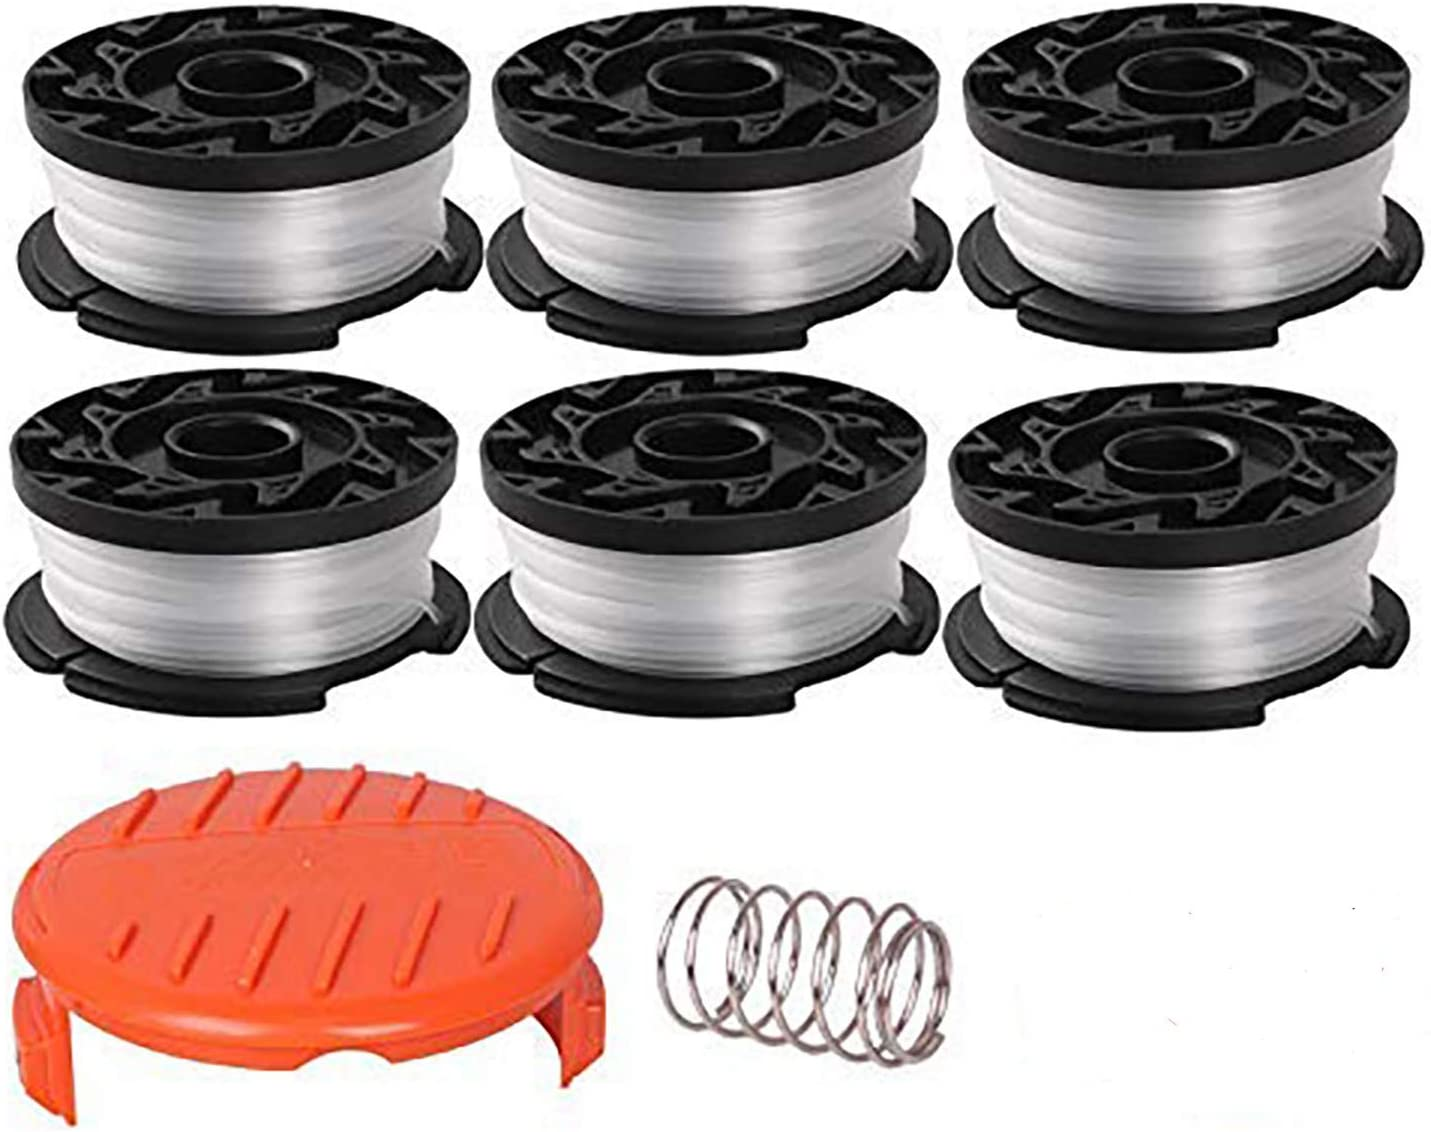 Weed Easter String Autofeed Cap FutureWay Trimmer Replacement Spool Cap Covers and Spring Compatible with Black Decker GH900 LST201 GH600 NST2018 CST2000 4 Spool Head Covers 4 Springs